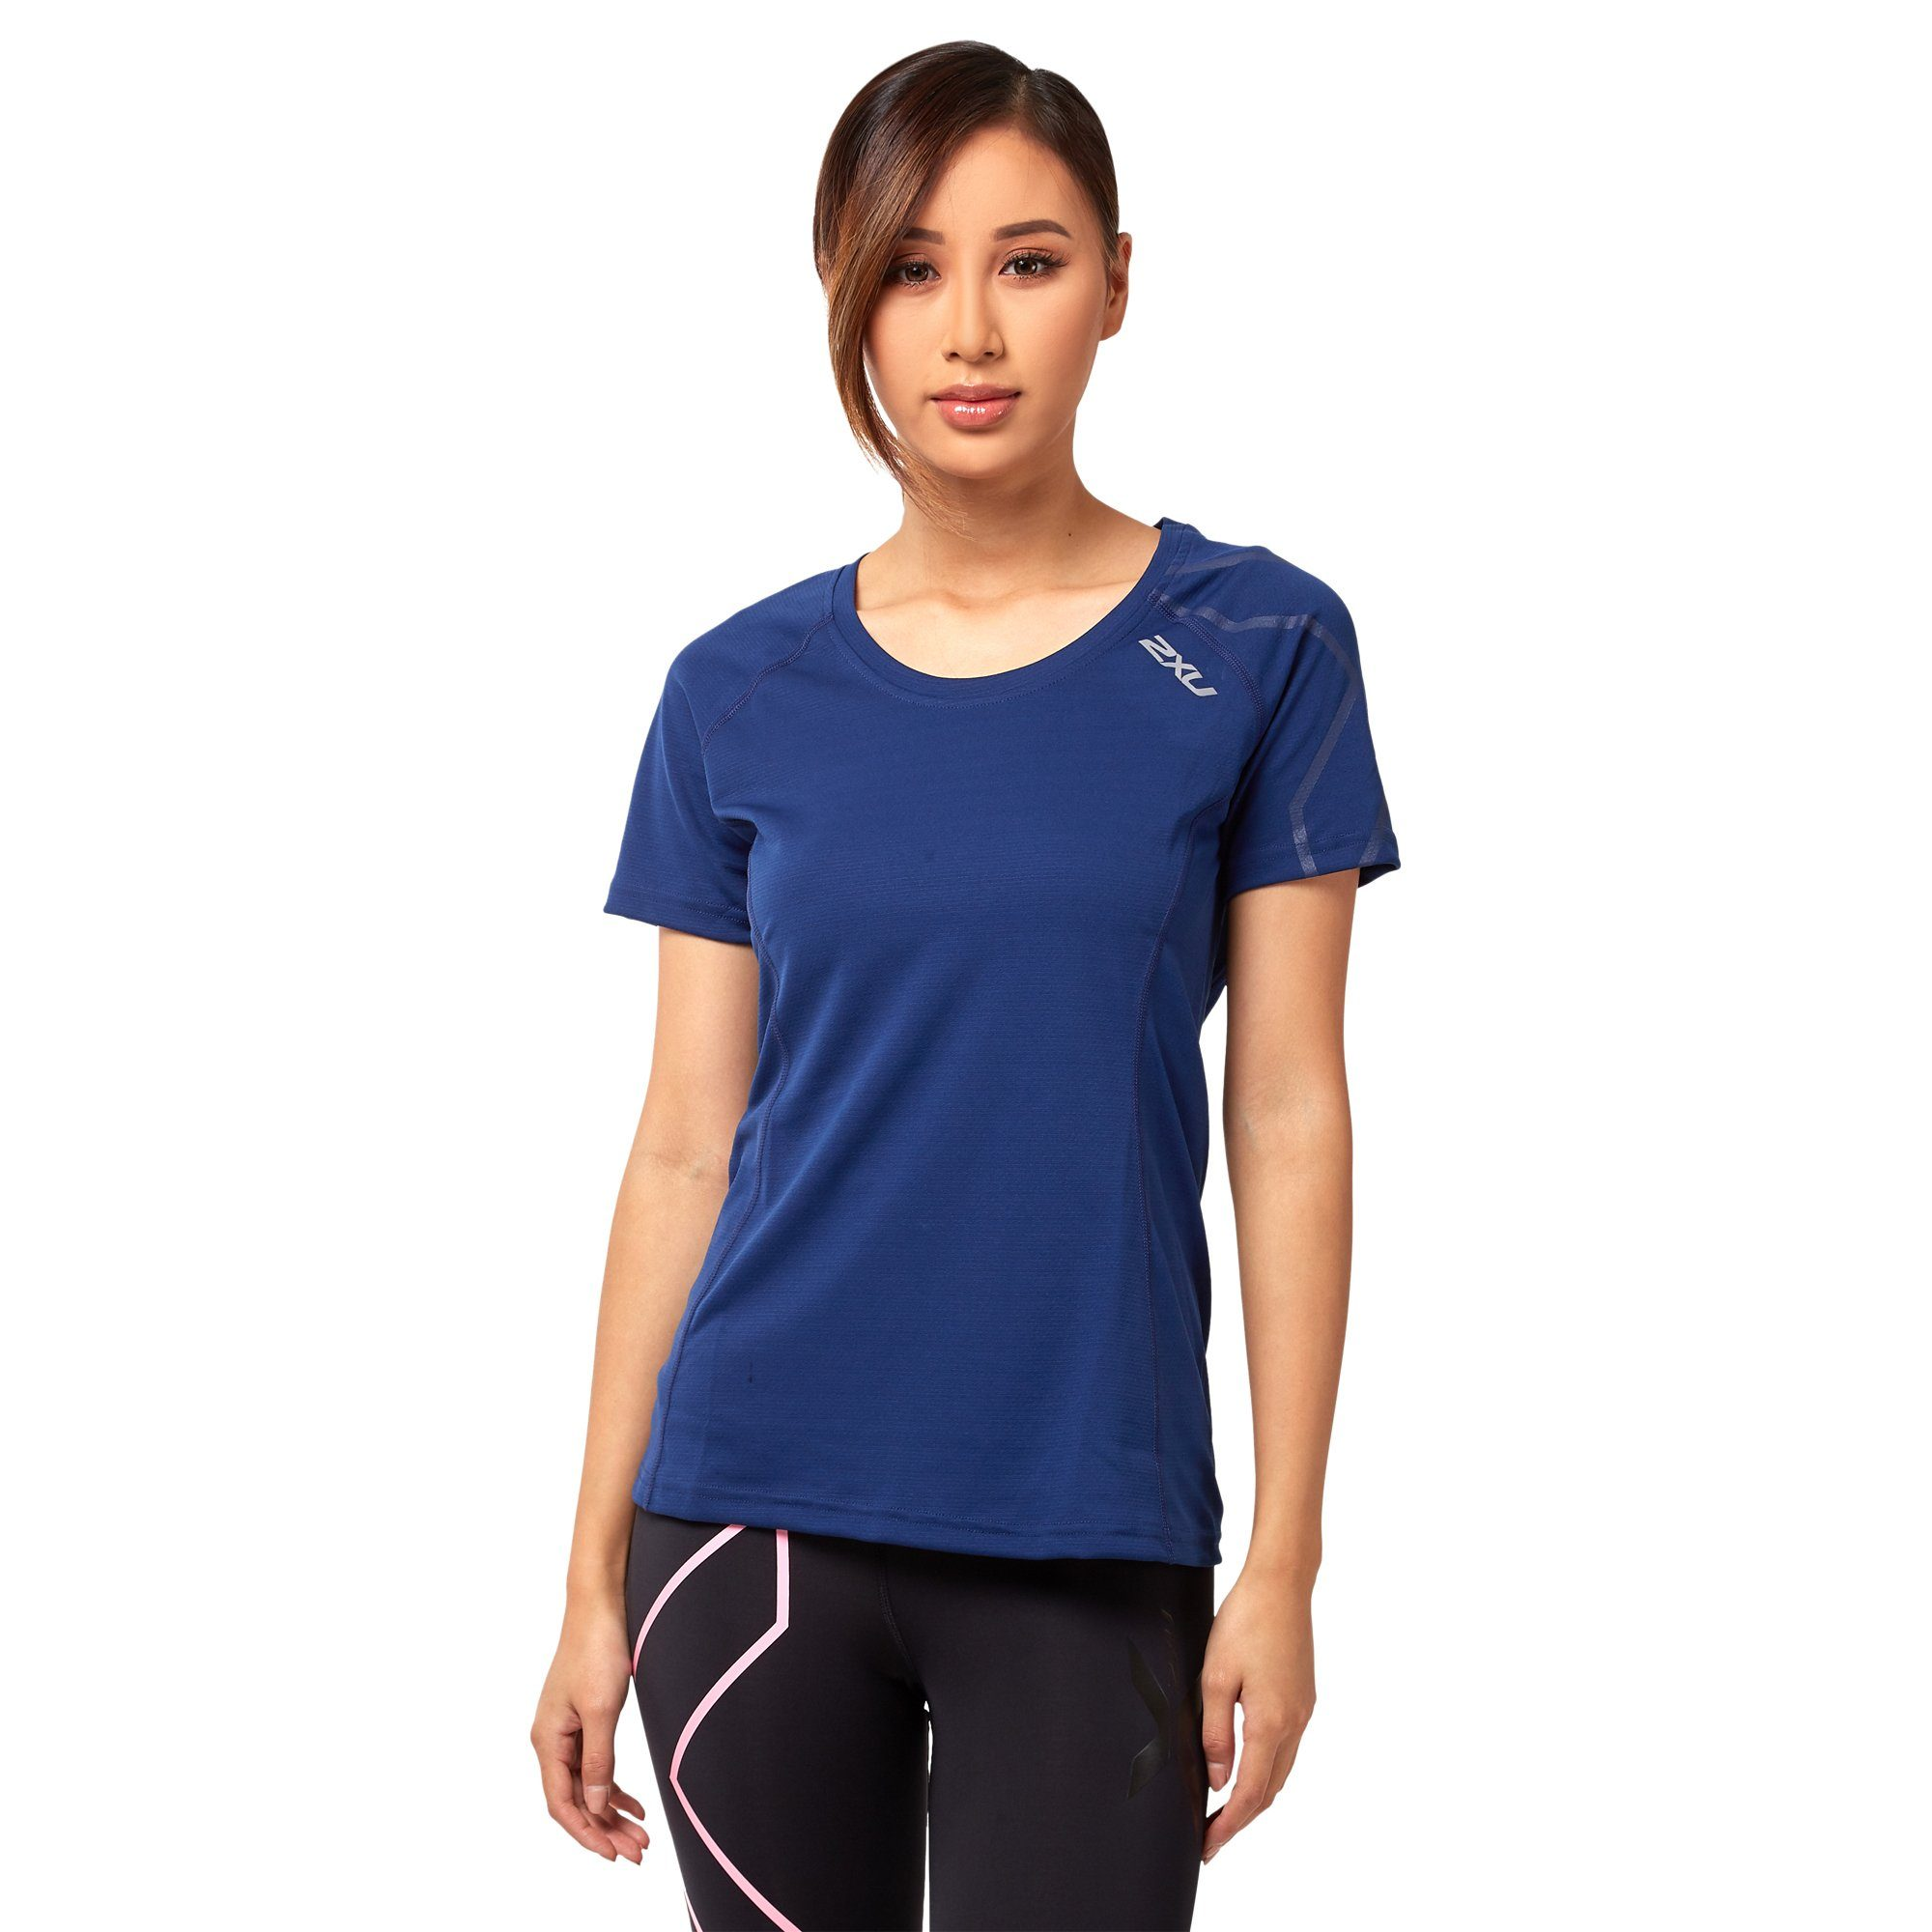 2XU Women's Active Run Tee - Navy Apparel 2XU